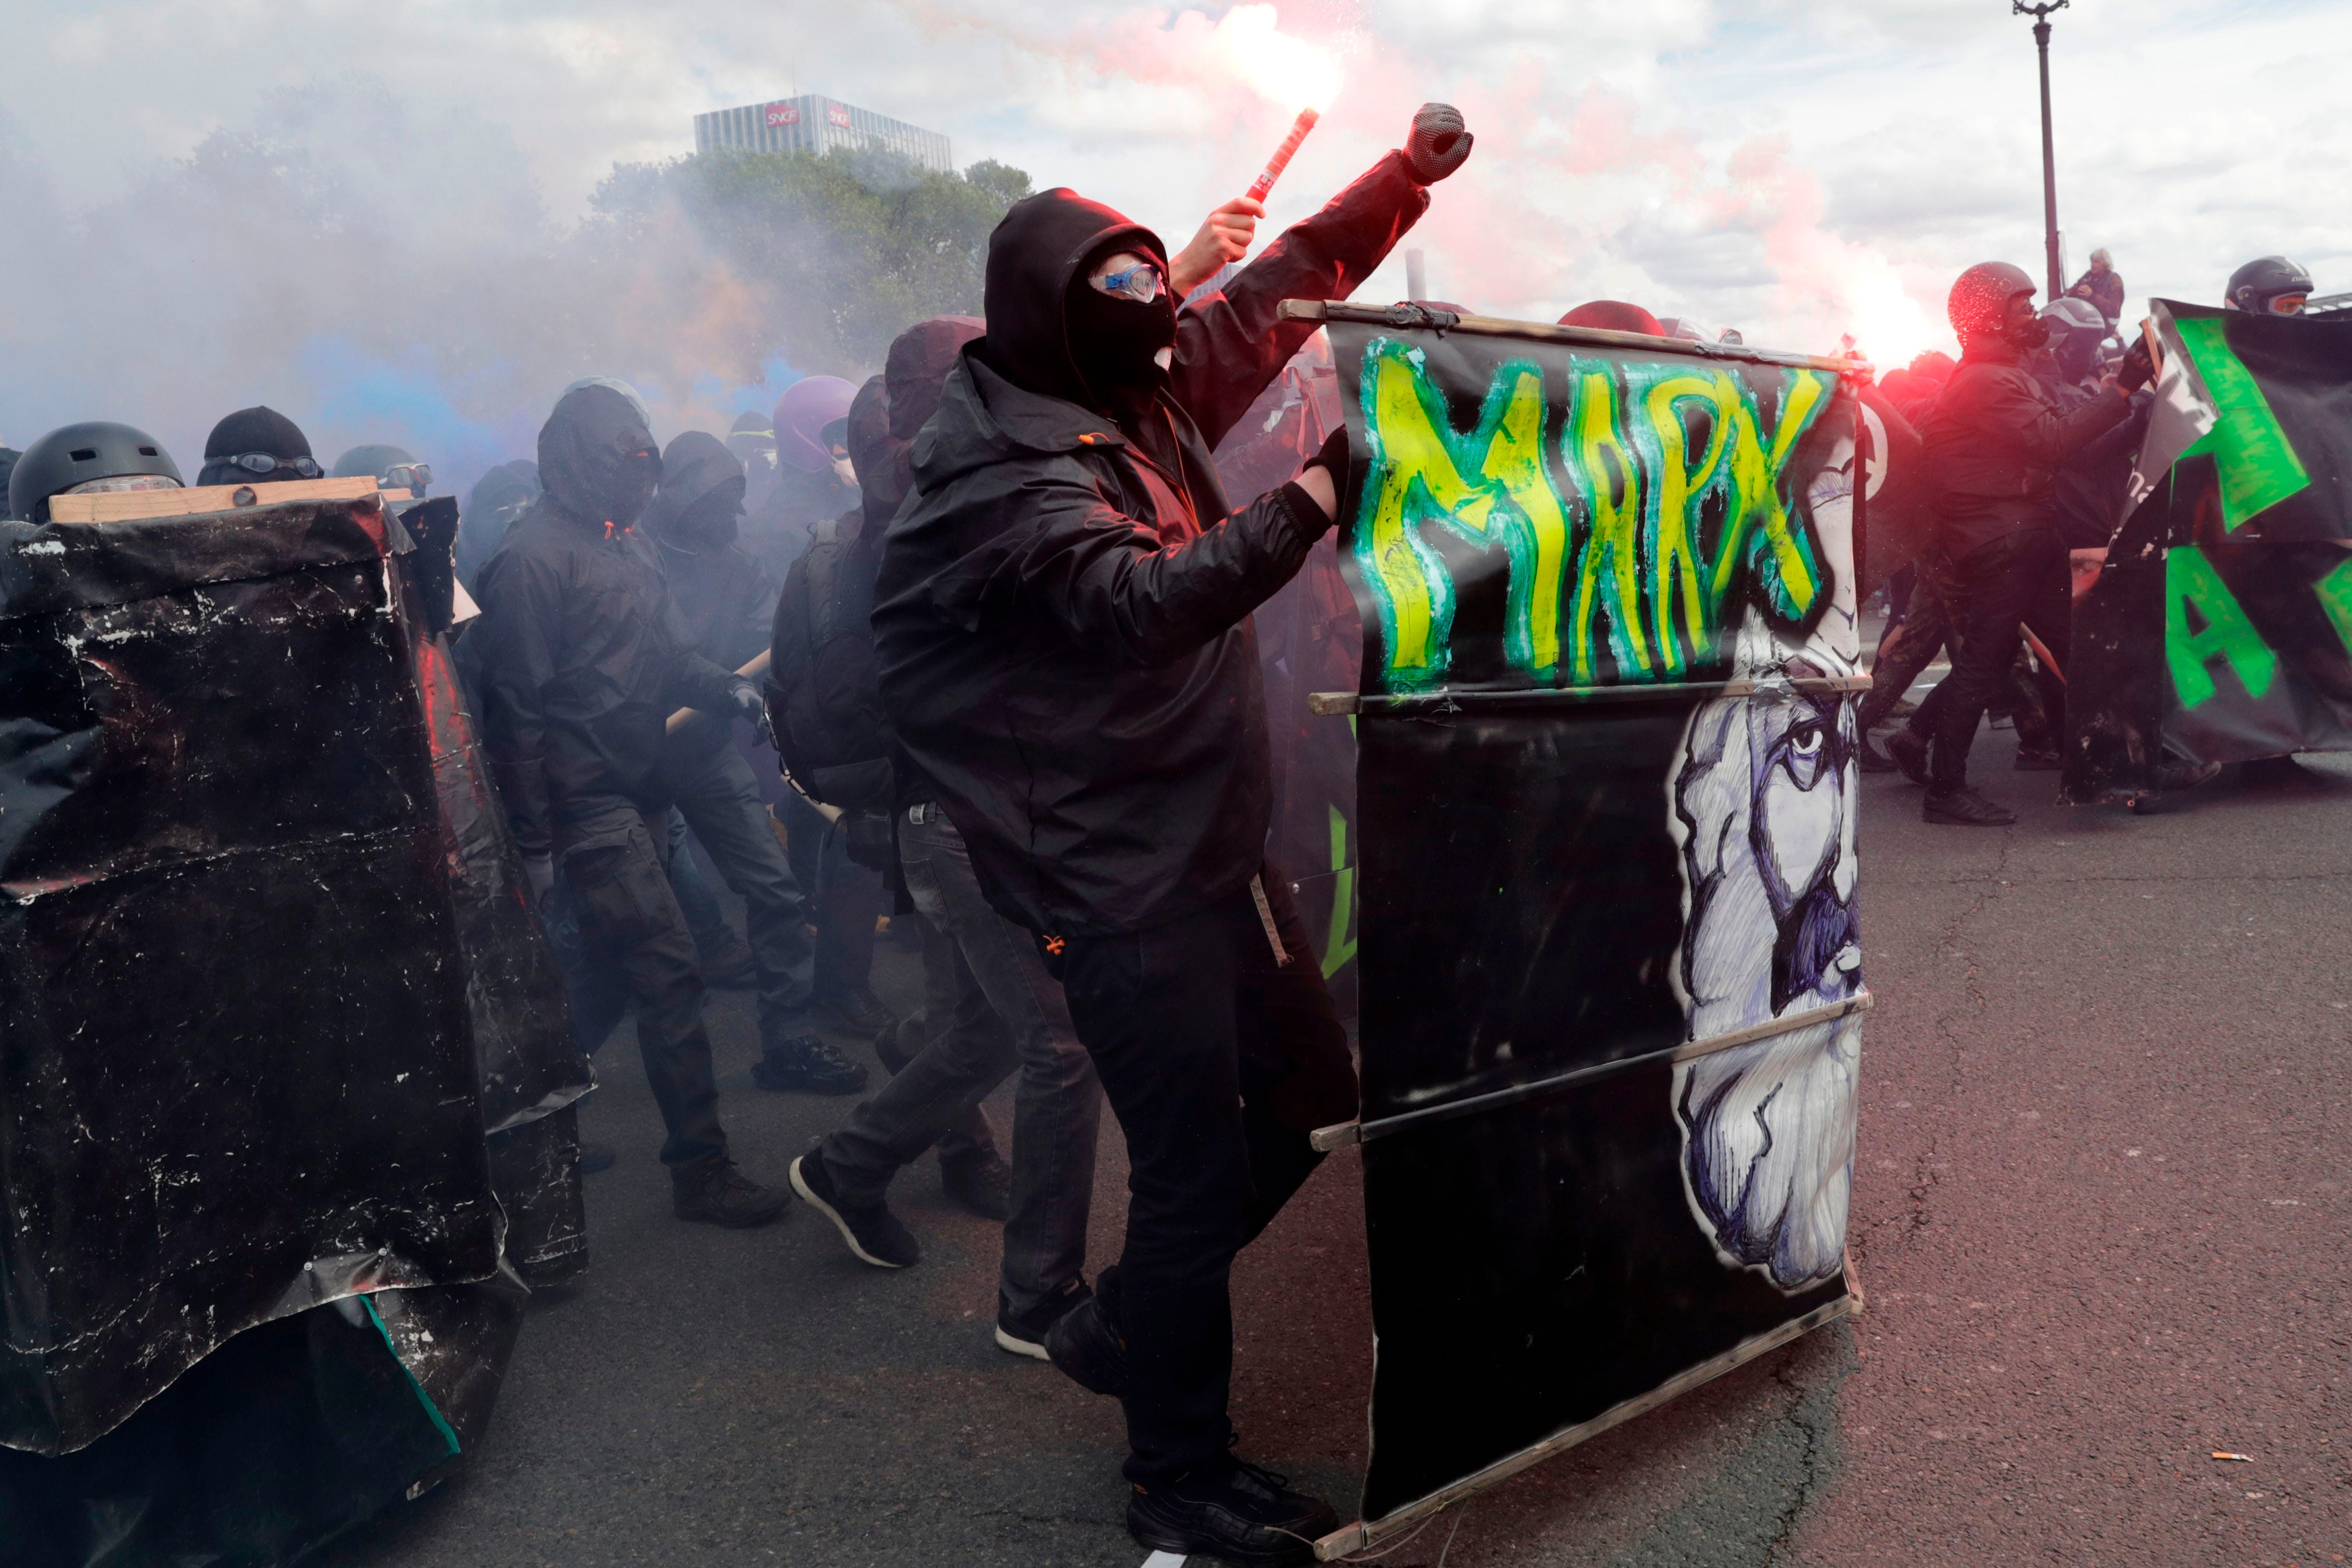 Protestors dressed in black and with faces covered hold smoke bombs and gesture as they take part in a march for the annual May Day workers' rally, in Paris, on May 1, 2018.